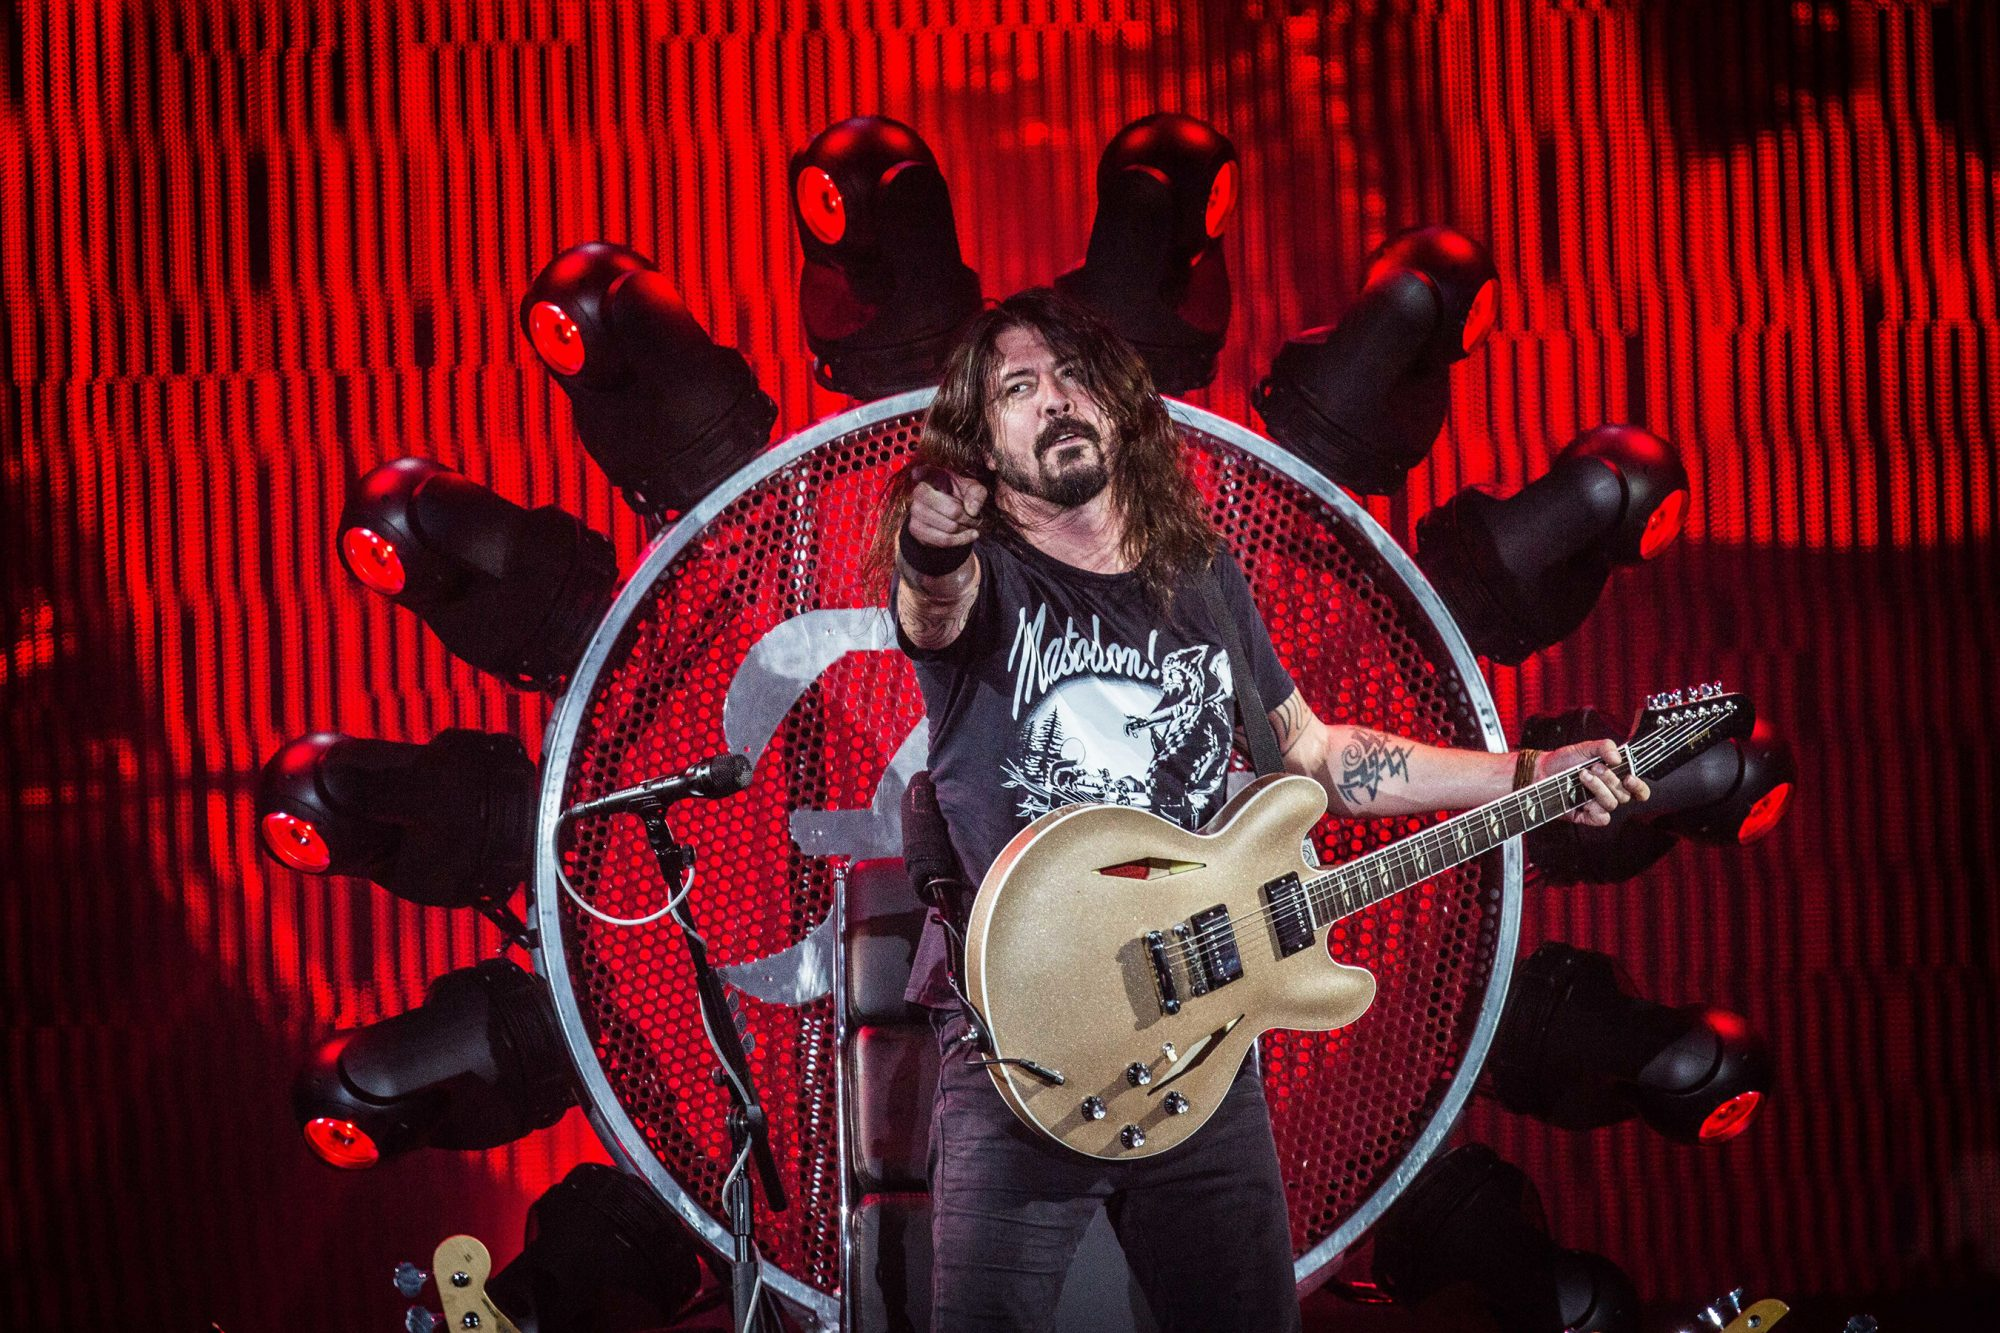 Dave Grohl of the american rock band Foo Fighters pictured